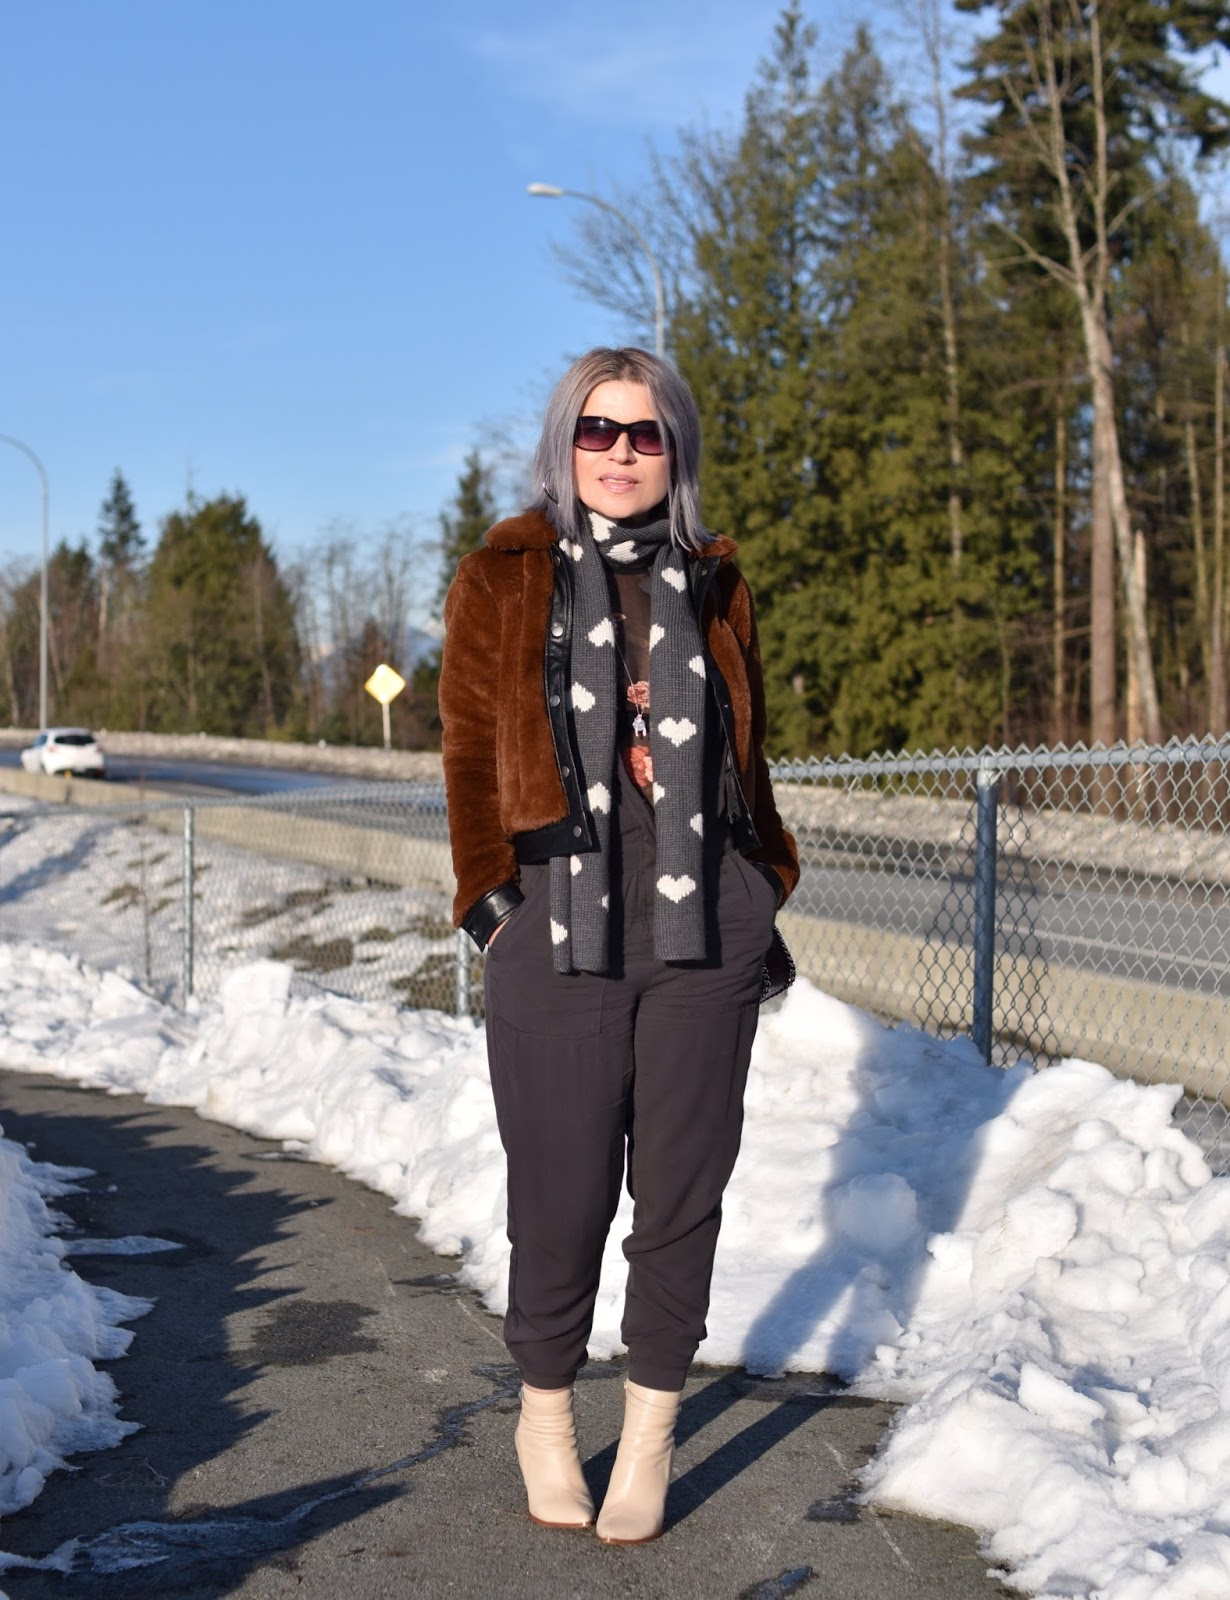 Understated:  styling a jumpsuit with a sheer floral top, teddybear bomber, and ivory booties